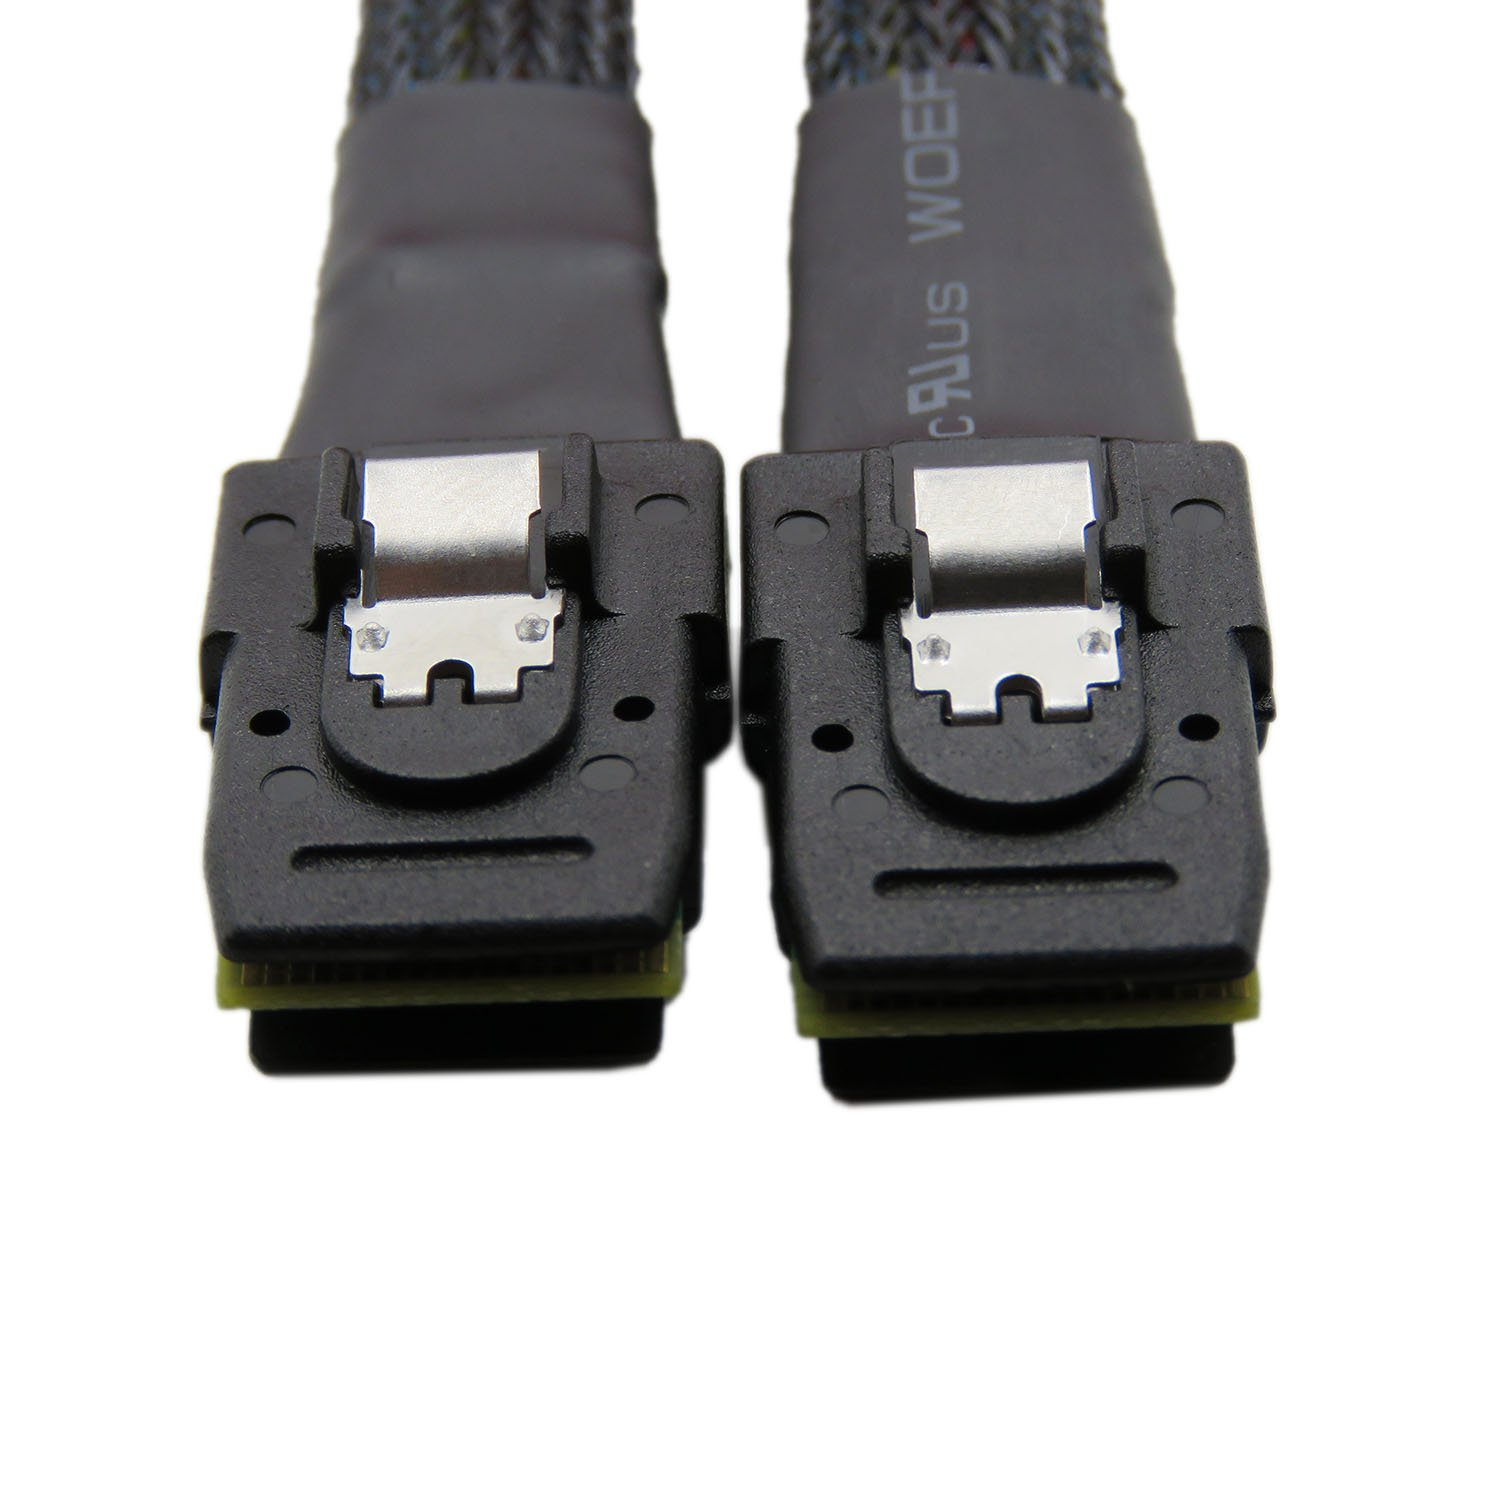 HDD Data Cable 1m YIWENTEC Mini SAS 36Pin to Mini SAS 36Pin Sff-8087